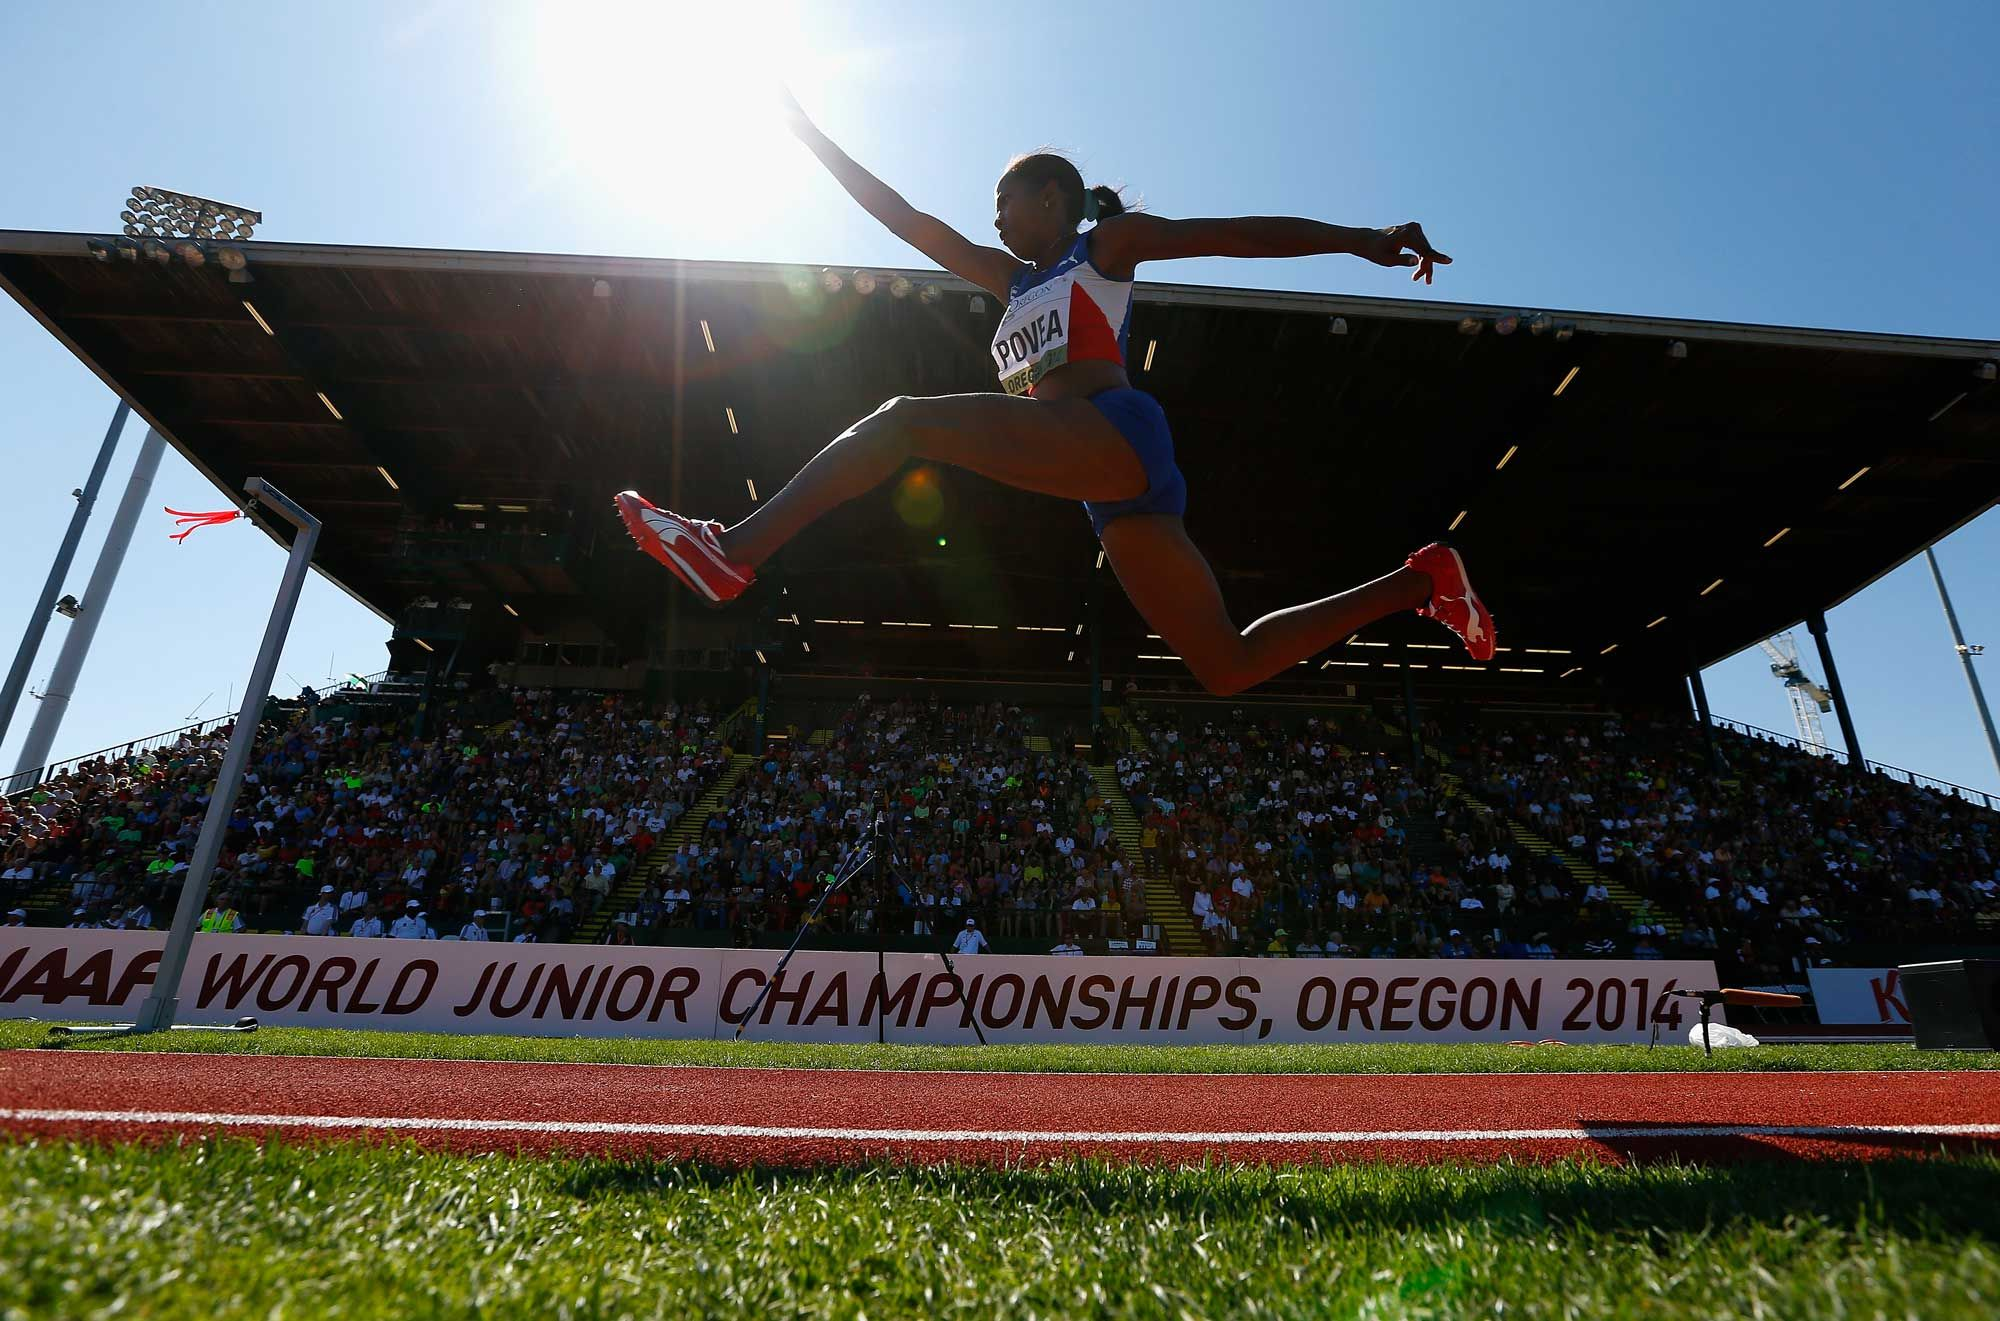 Liadagmis Povea of Cuba competes in the women's triple jump during day five of the IAAF World Junior Championships at Hayward Field on July 26, 2014 in Eugene, Oregon. (Photo by Jonathan Ferrey/Getty Images)